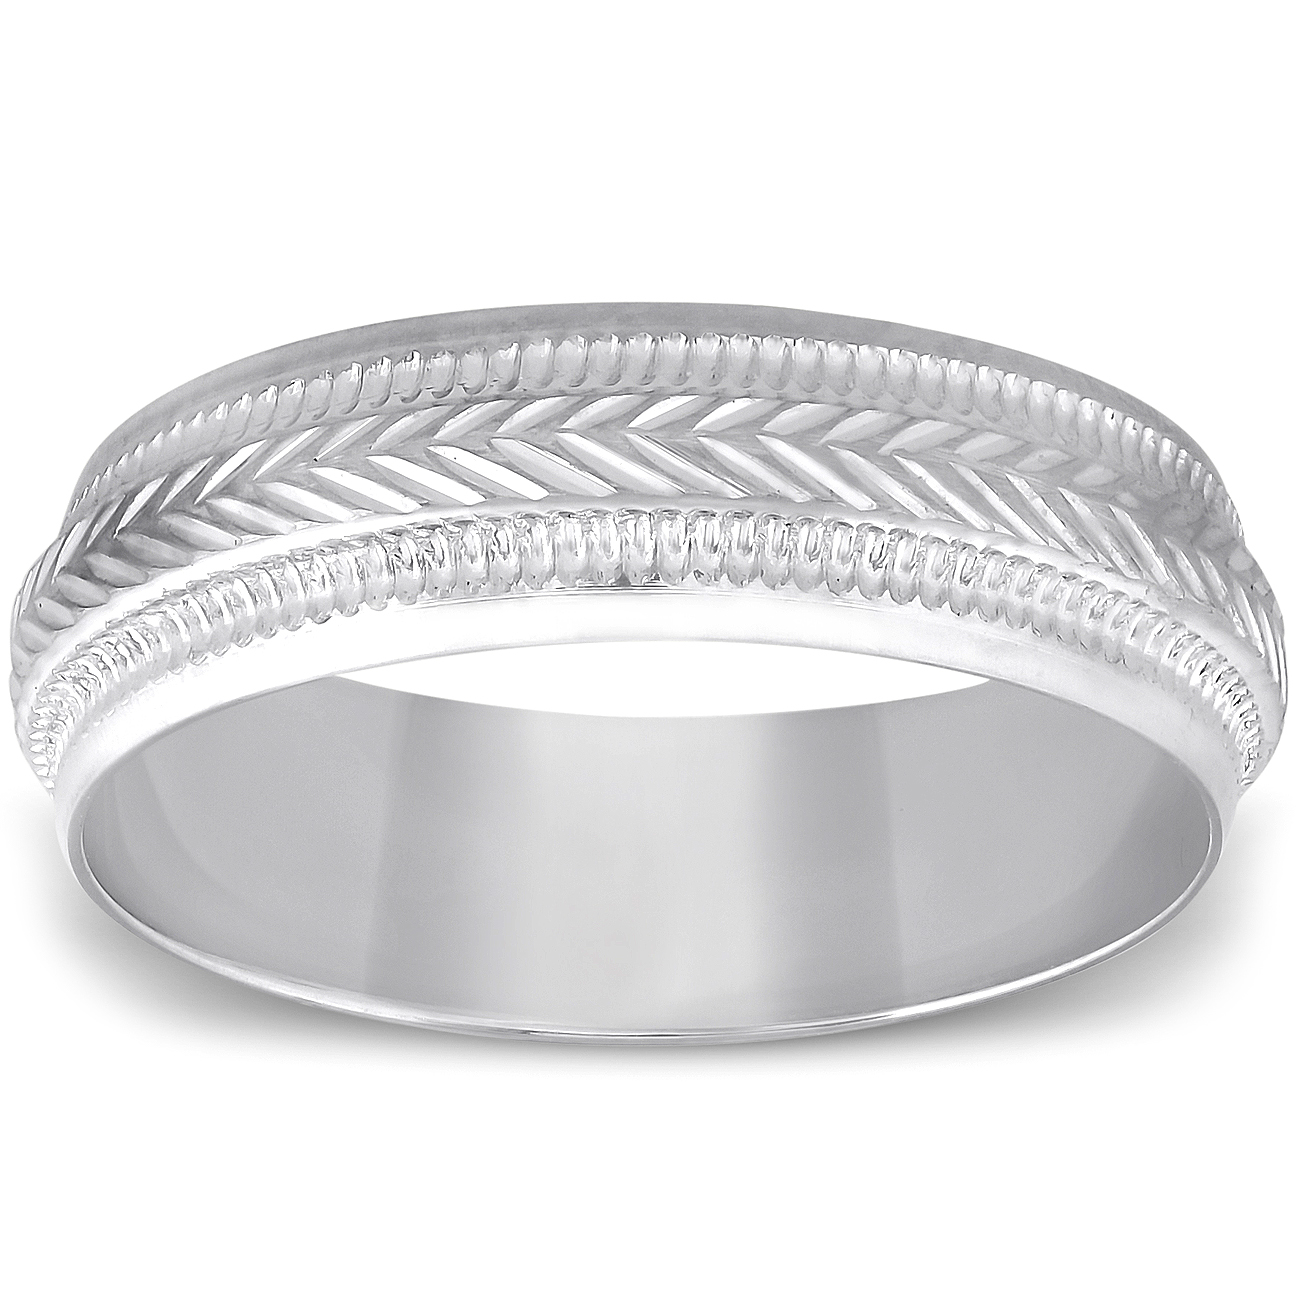 6mm Mens 10k White Gold Brushed Hand Carved Pattern Wedding Band Ebay